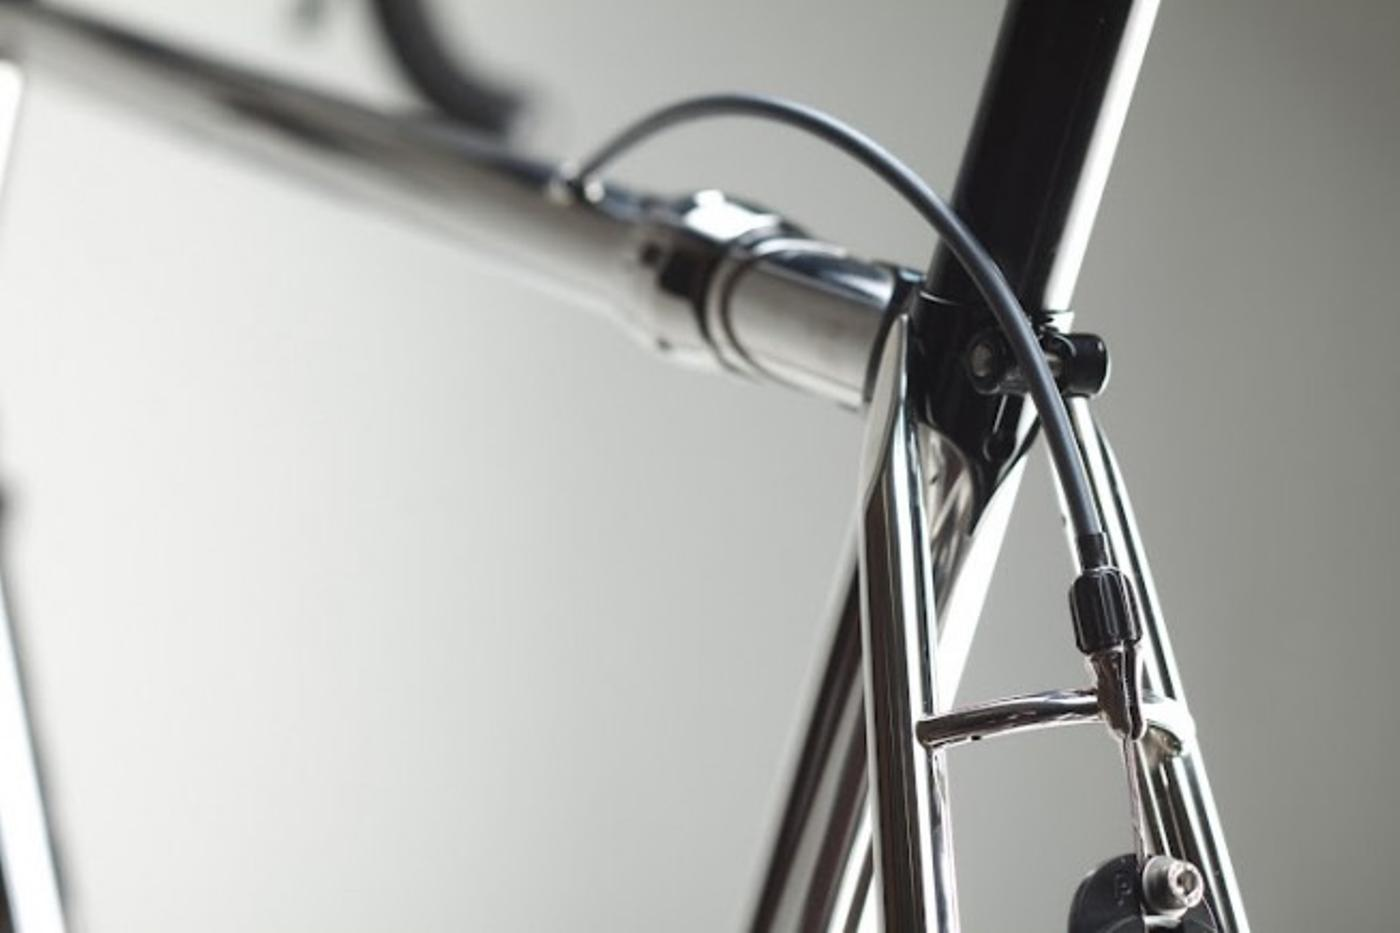 2012 NAHBS Preview: Ellis Cycles